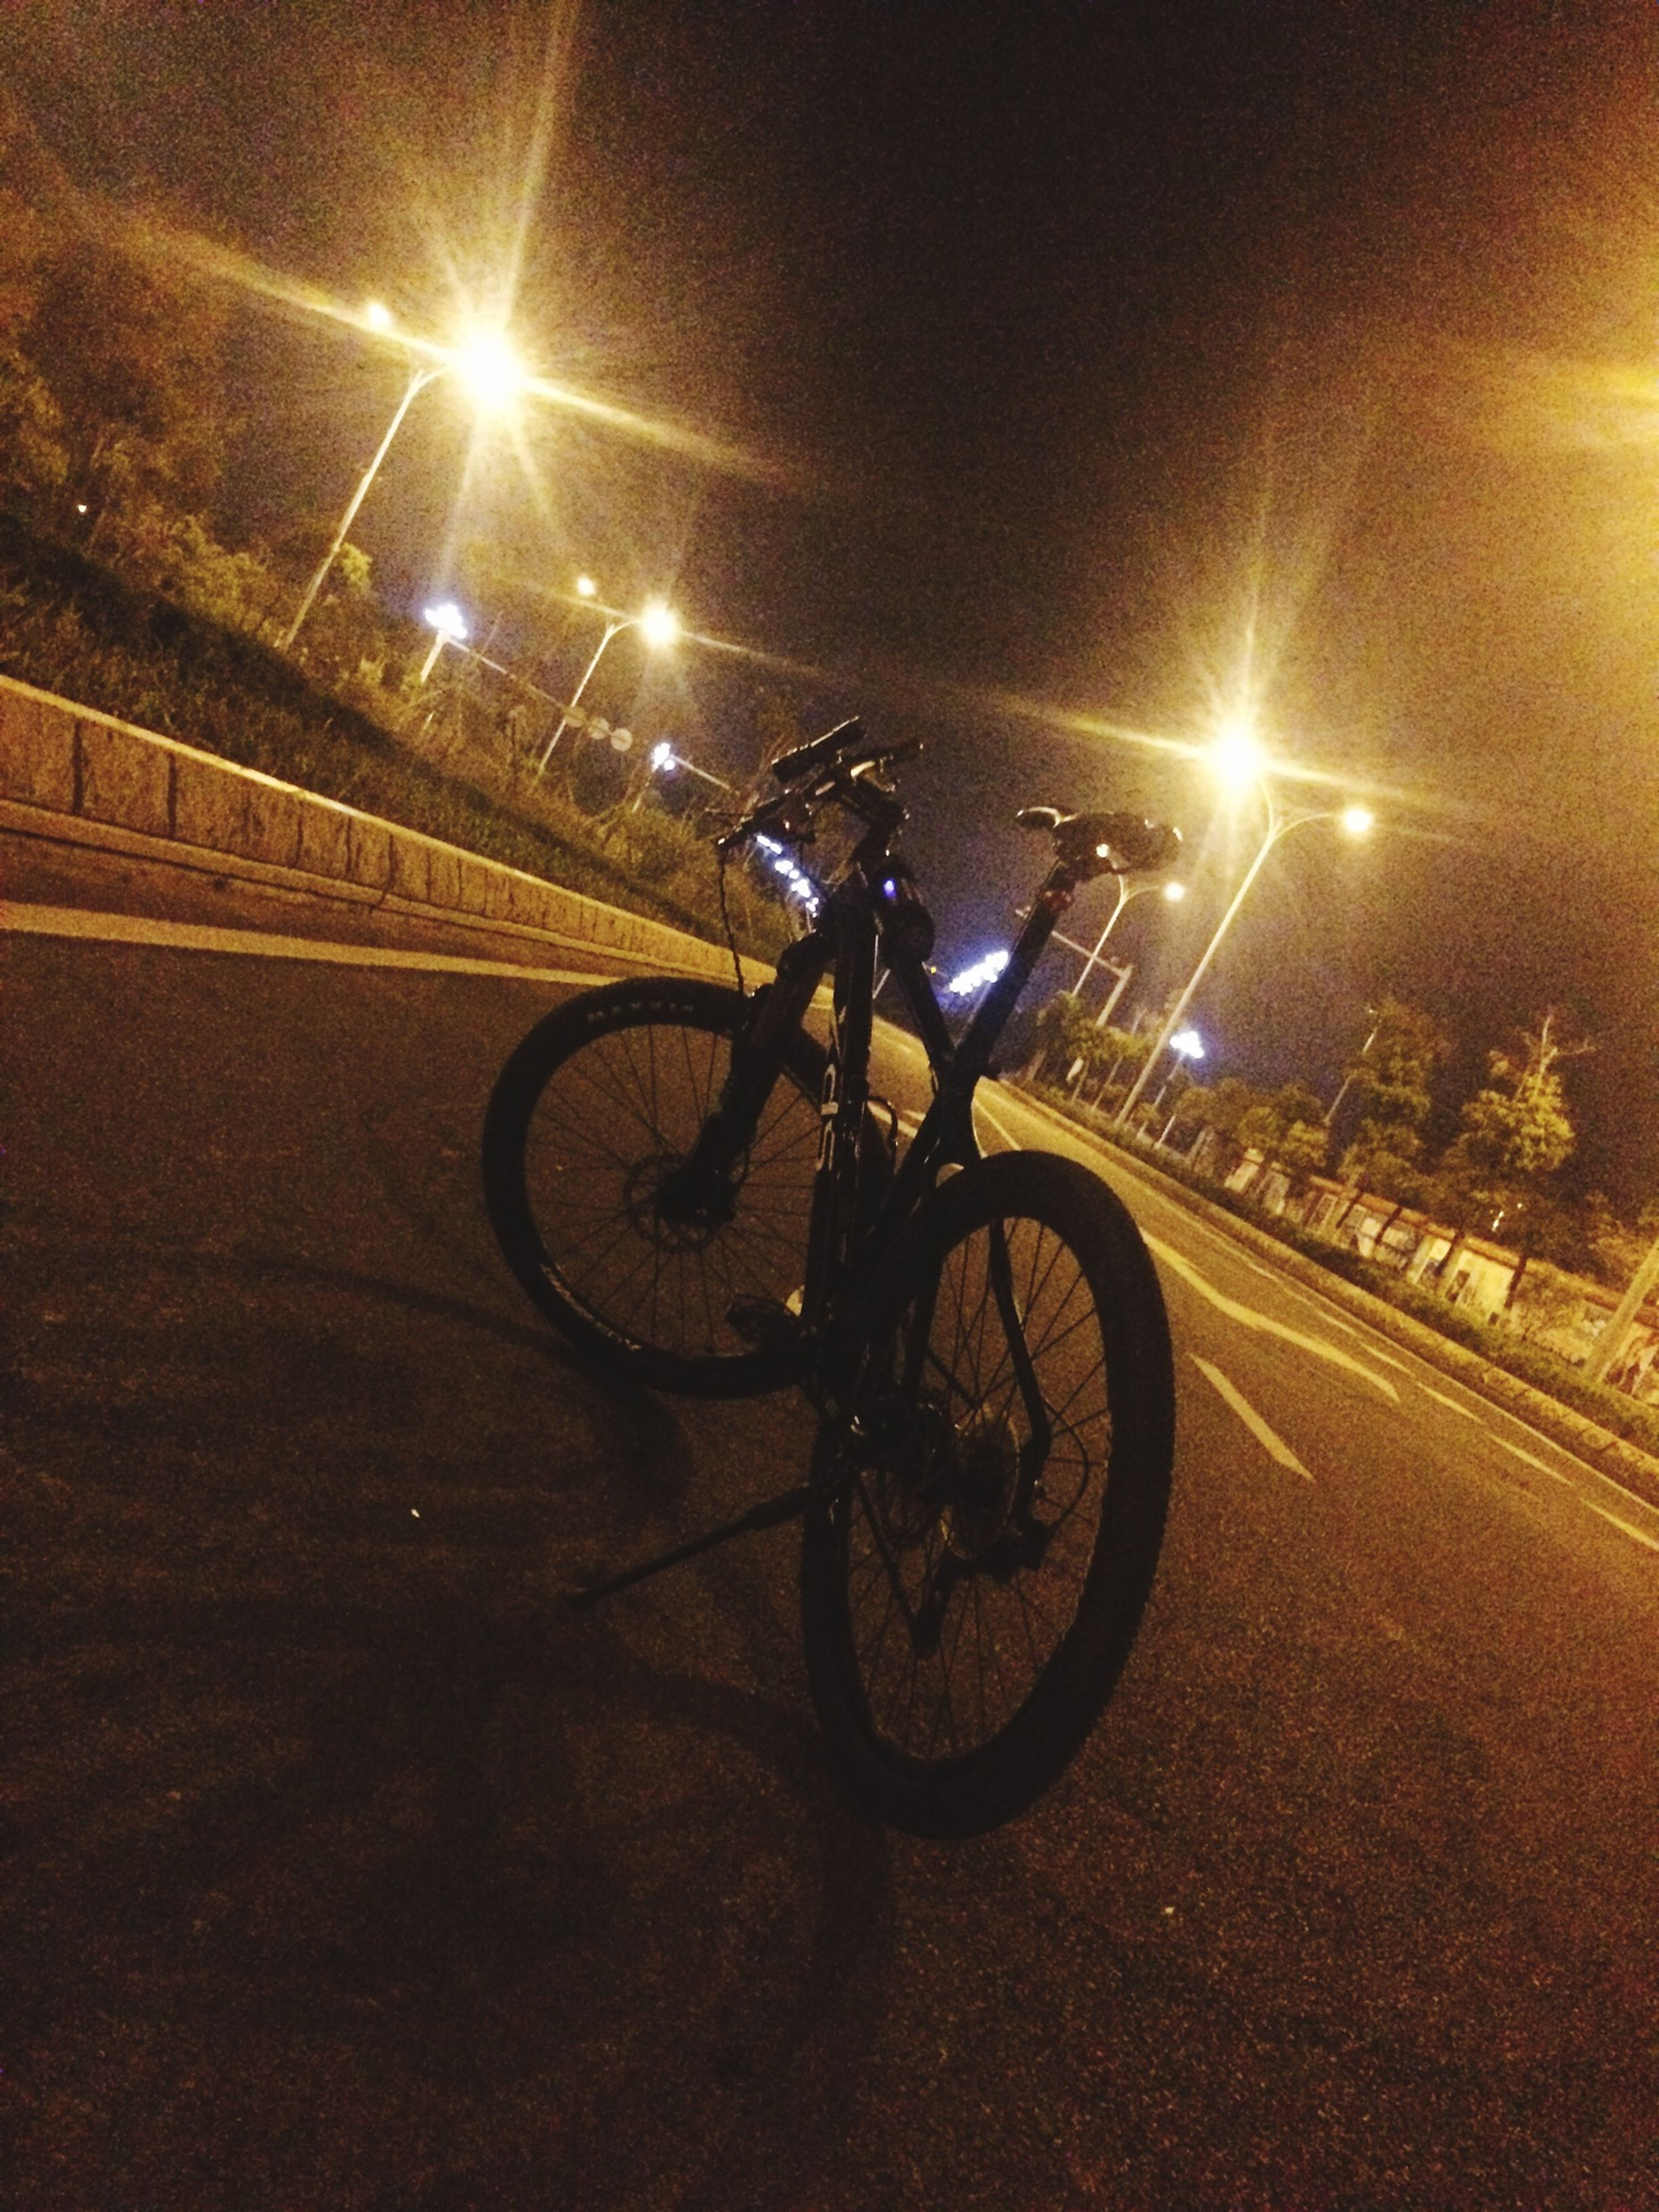 transportation, illuminated, mode of transport, night, land vehicle, bicycle, street, road, street light, lighting equipment, built structure, on the move, stationary, car, architecture, parking, motion, road marking, parked, the way forward